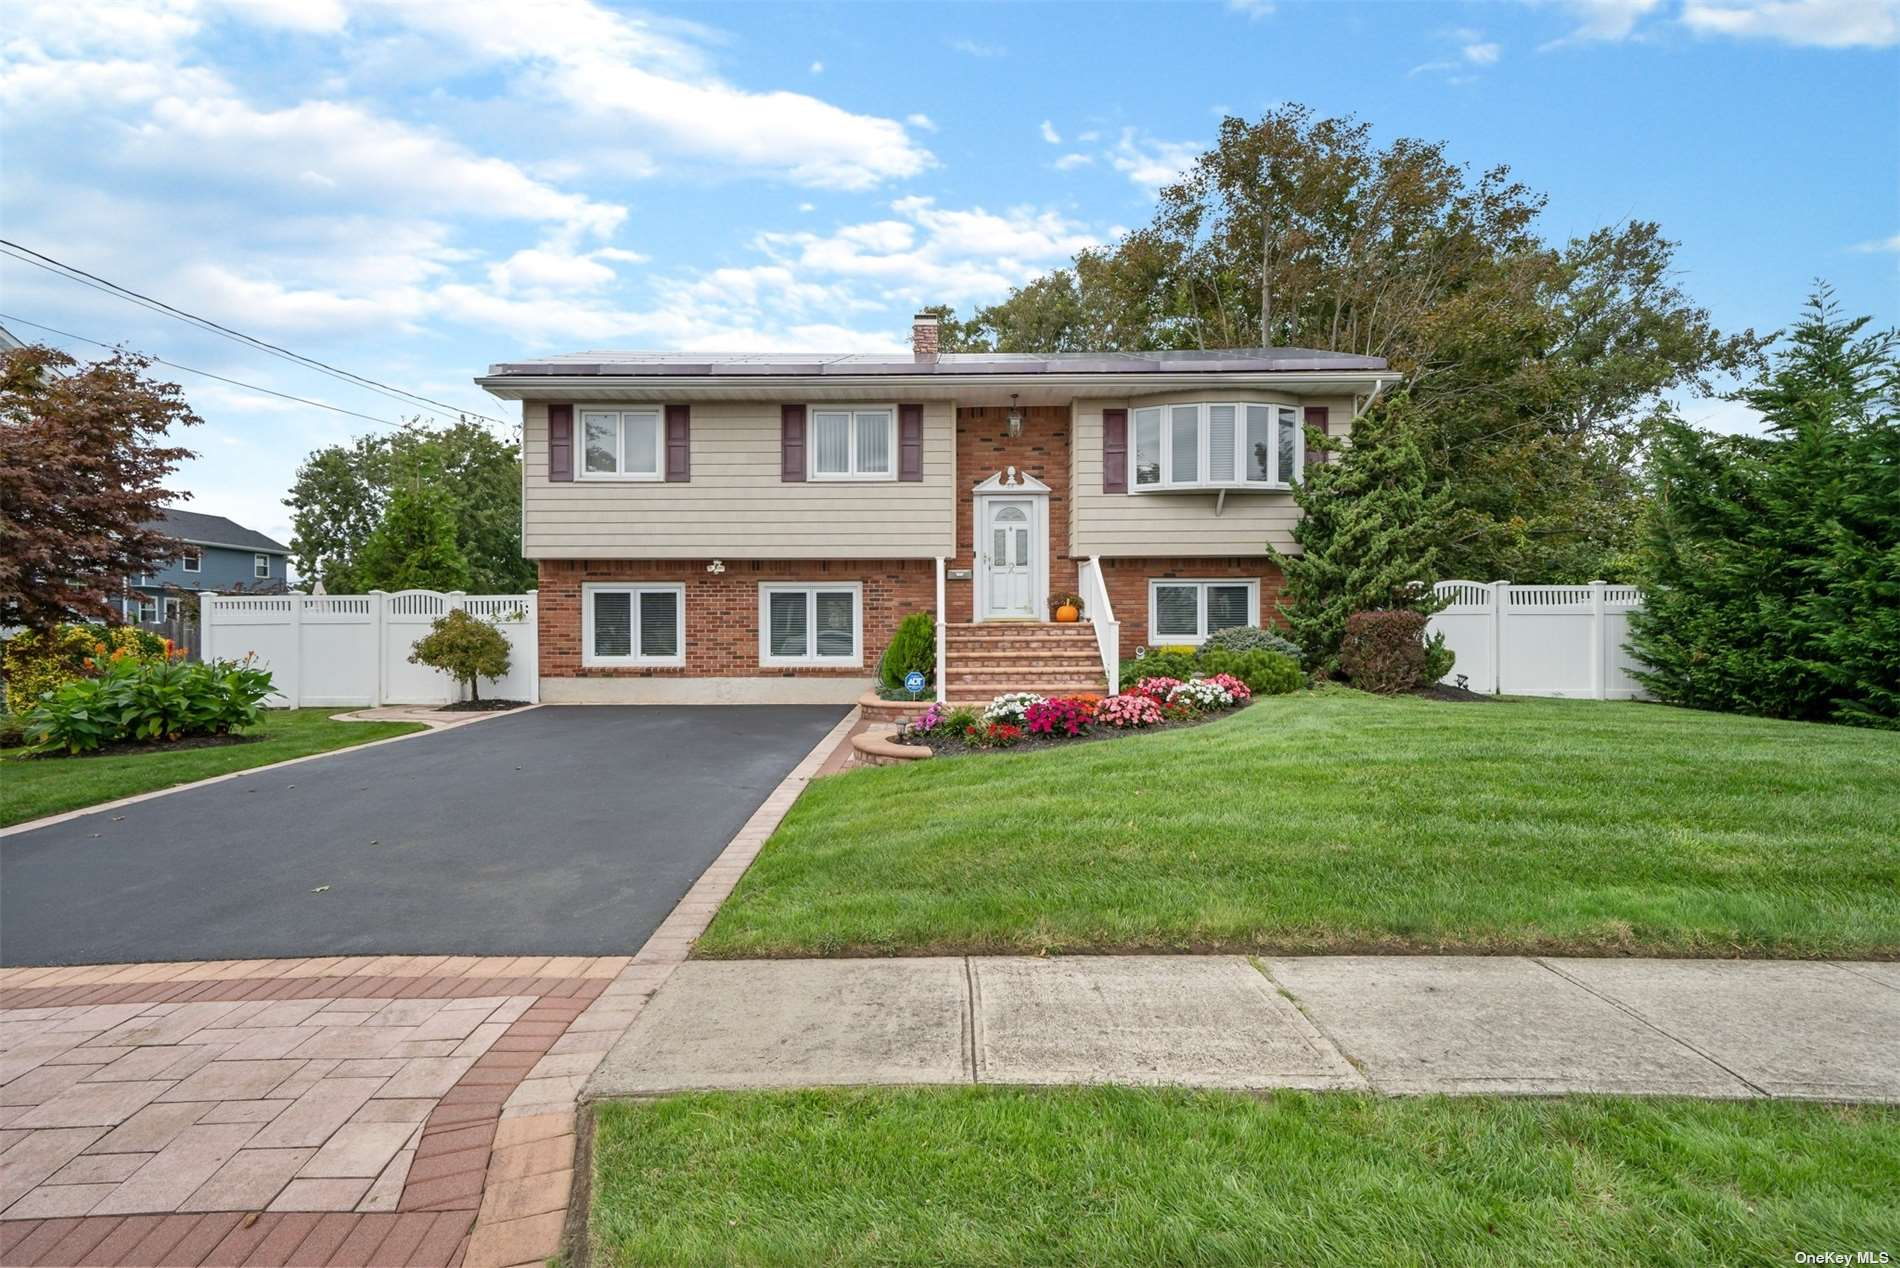 Welcome to this Beautiful Custom Wide-line Hi Ranch, Located in the Stunning American Venice Section of Lindenhurst. This Home Boasts 5 Bedrooms and 2 Full Bath and is Completely Move in Ready. This Home has been Meticulously Maintained. It is a True Gem and a Must See!  It sits on an 80 x 100 Fenced Lot with a Private 2 Car Driveway. The Backyard Features an Elevated Deck, Covered Patio, and an Above Ground Pool. Possible Mother-Daughter with Proper Permit!  Perfect Opportunity for Additional Income or Extended Family!